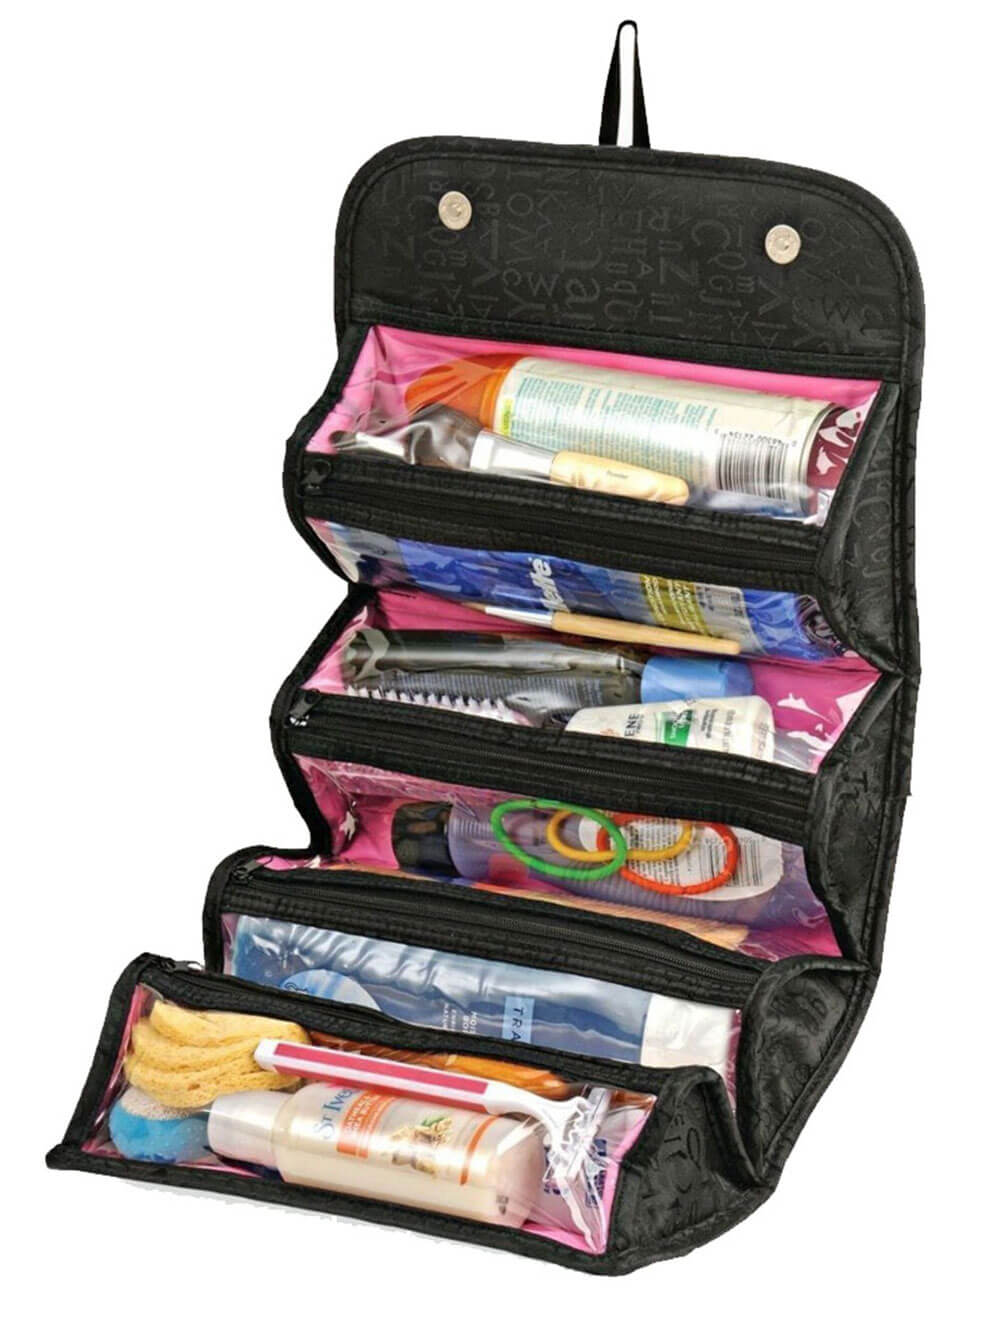 Roll N Go Cosmetic Organiser Travel Toiletry Kit Travel Toiletry Kit